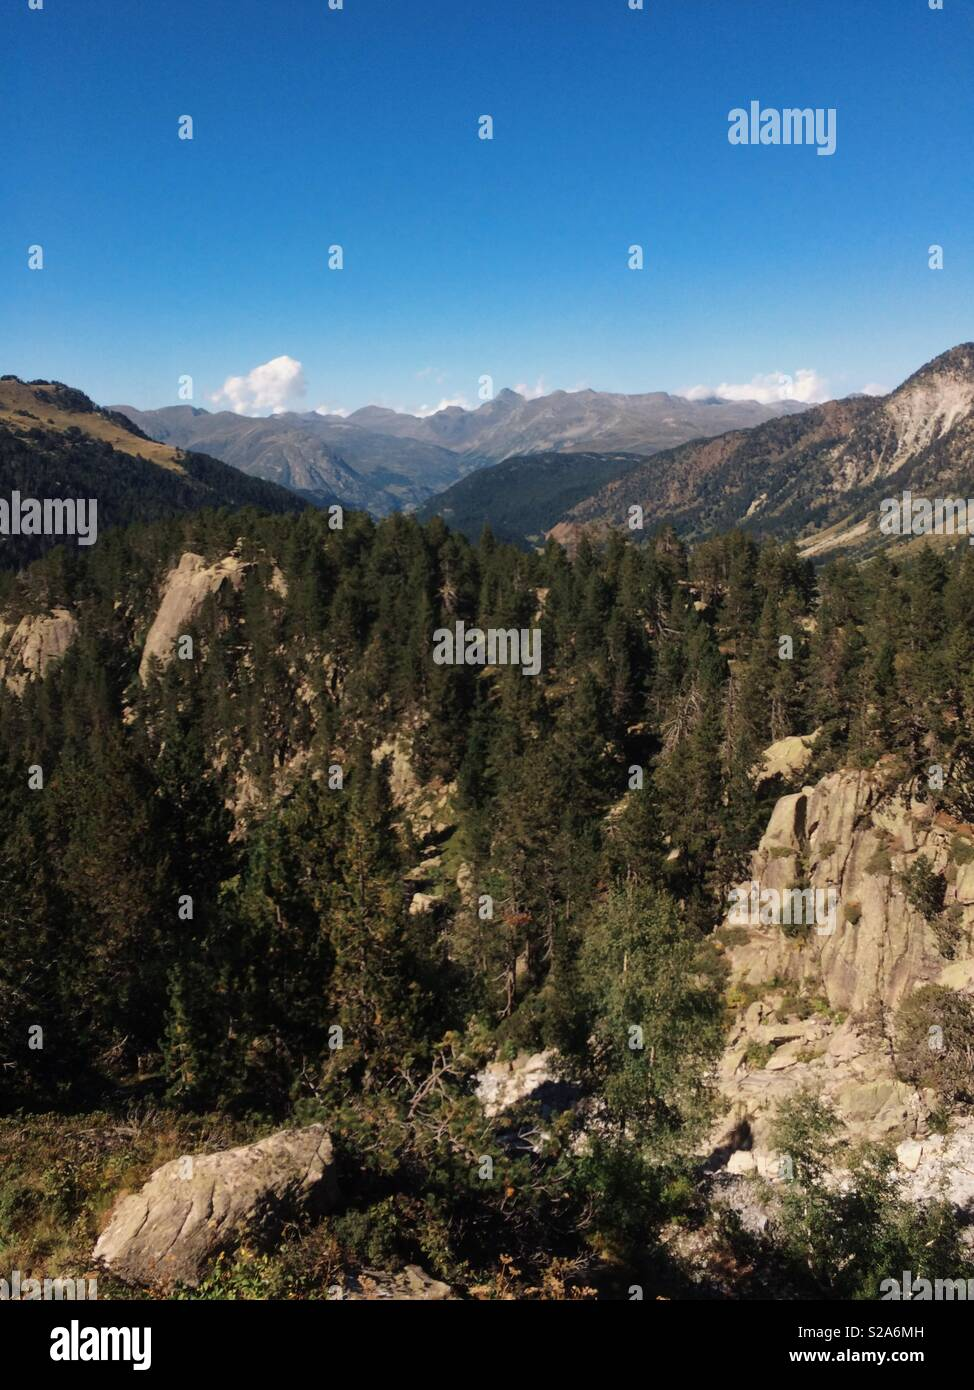 Mountainsides in Pyrenees - Stock Image